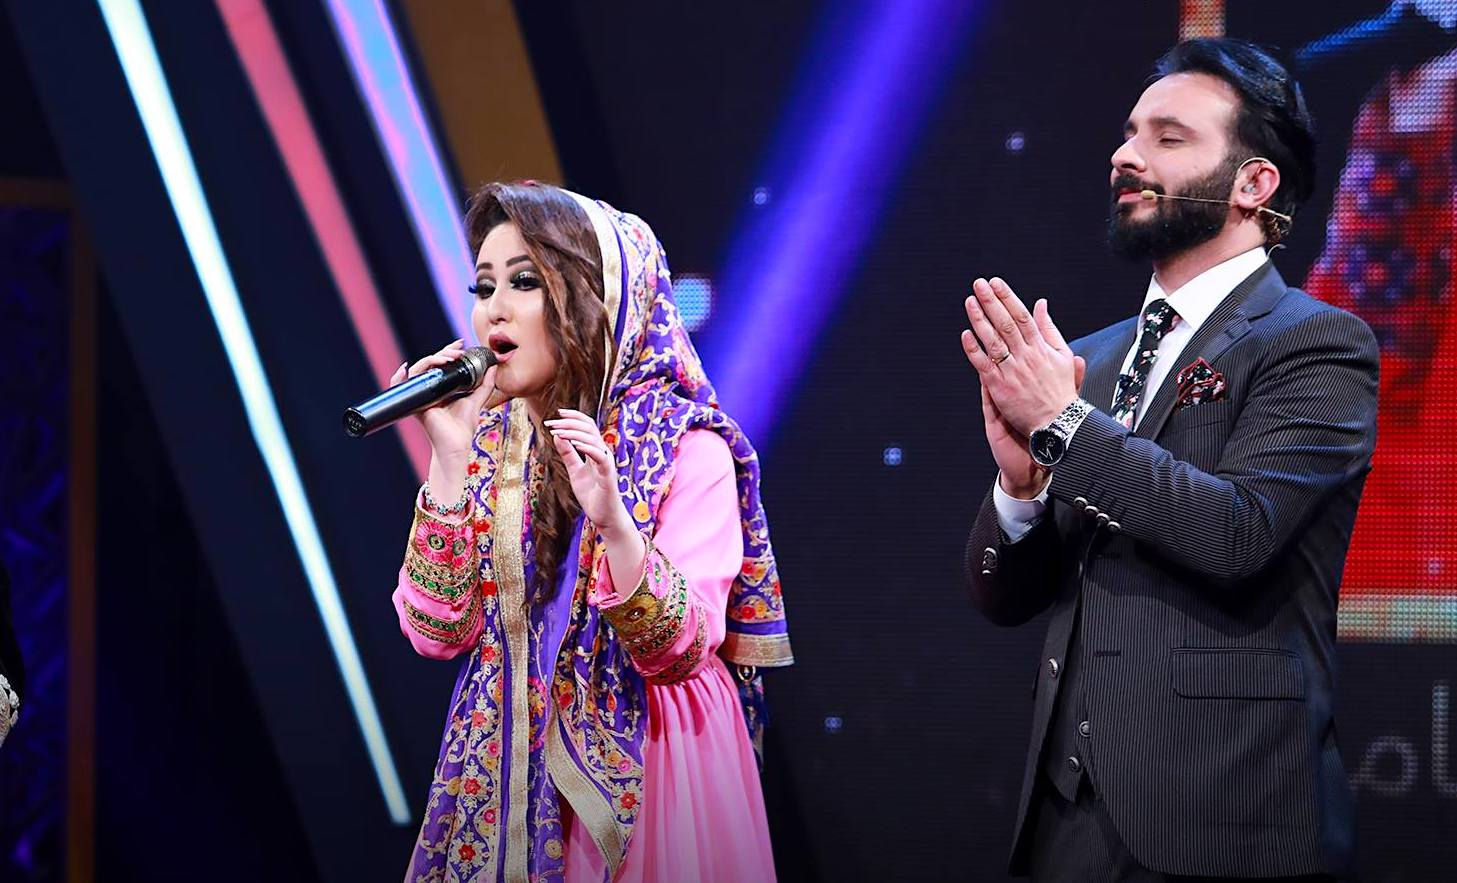 Zahra Elham becomes 1st woman to win on Afghan Star